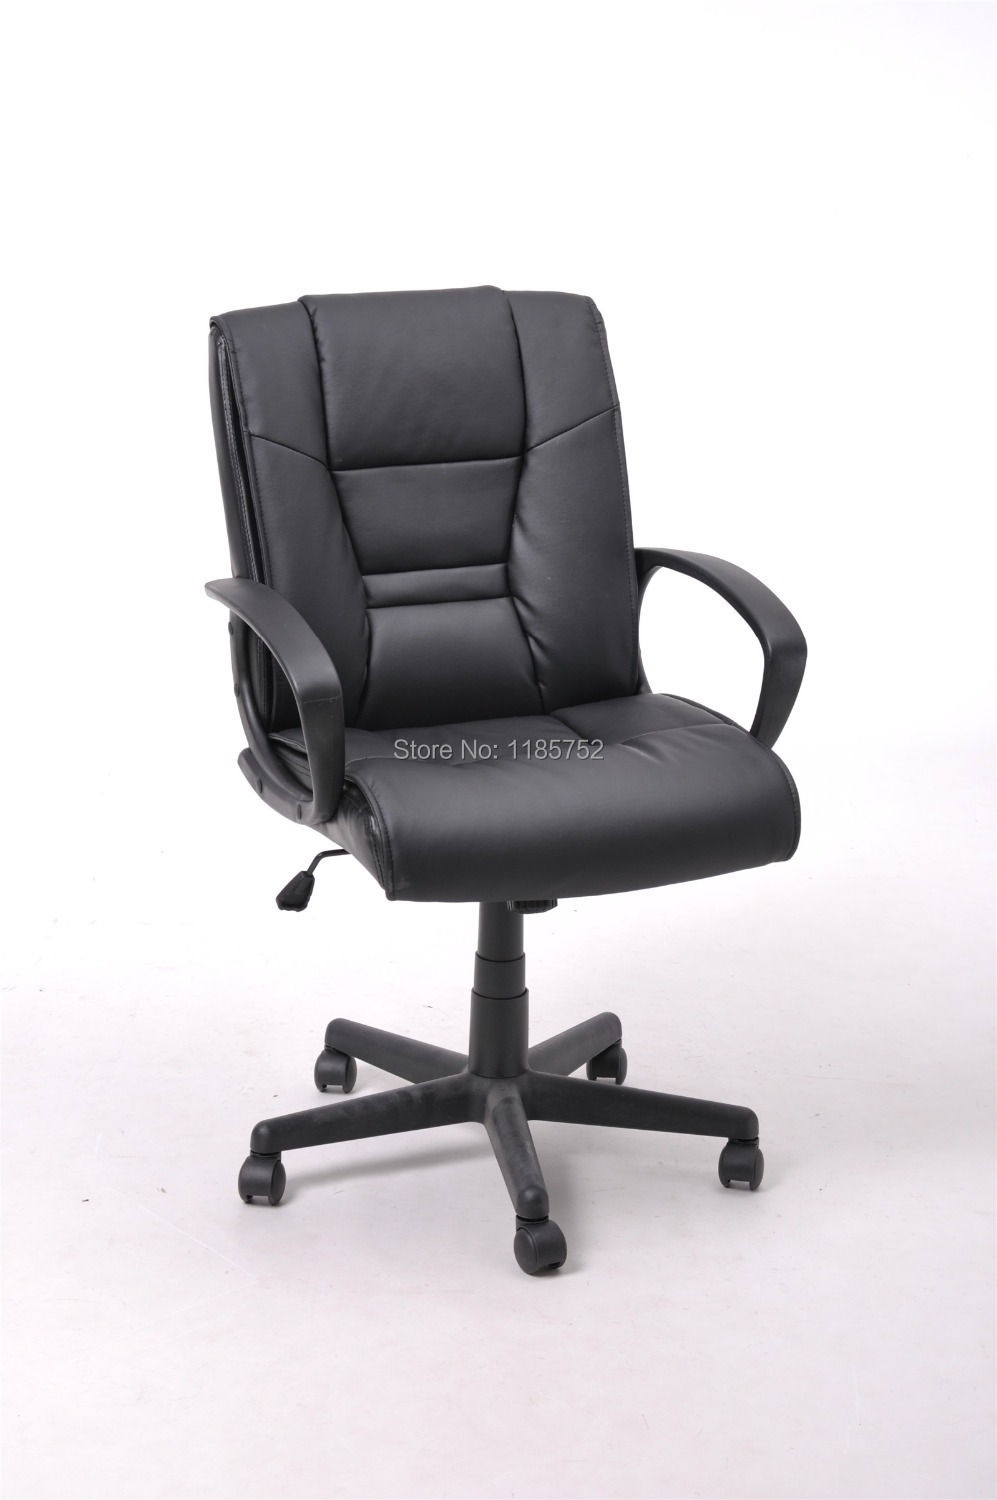 Brand New High Quality Black Pu Leather Metal Lift Chair Office Chair Computer Chair With Arms Swivel Chair Office Furniture In Office Chairs From